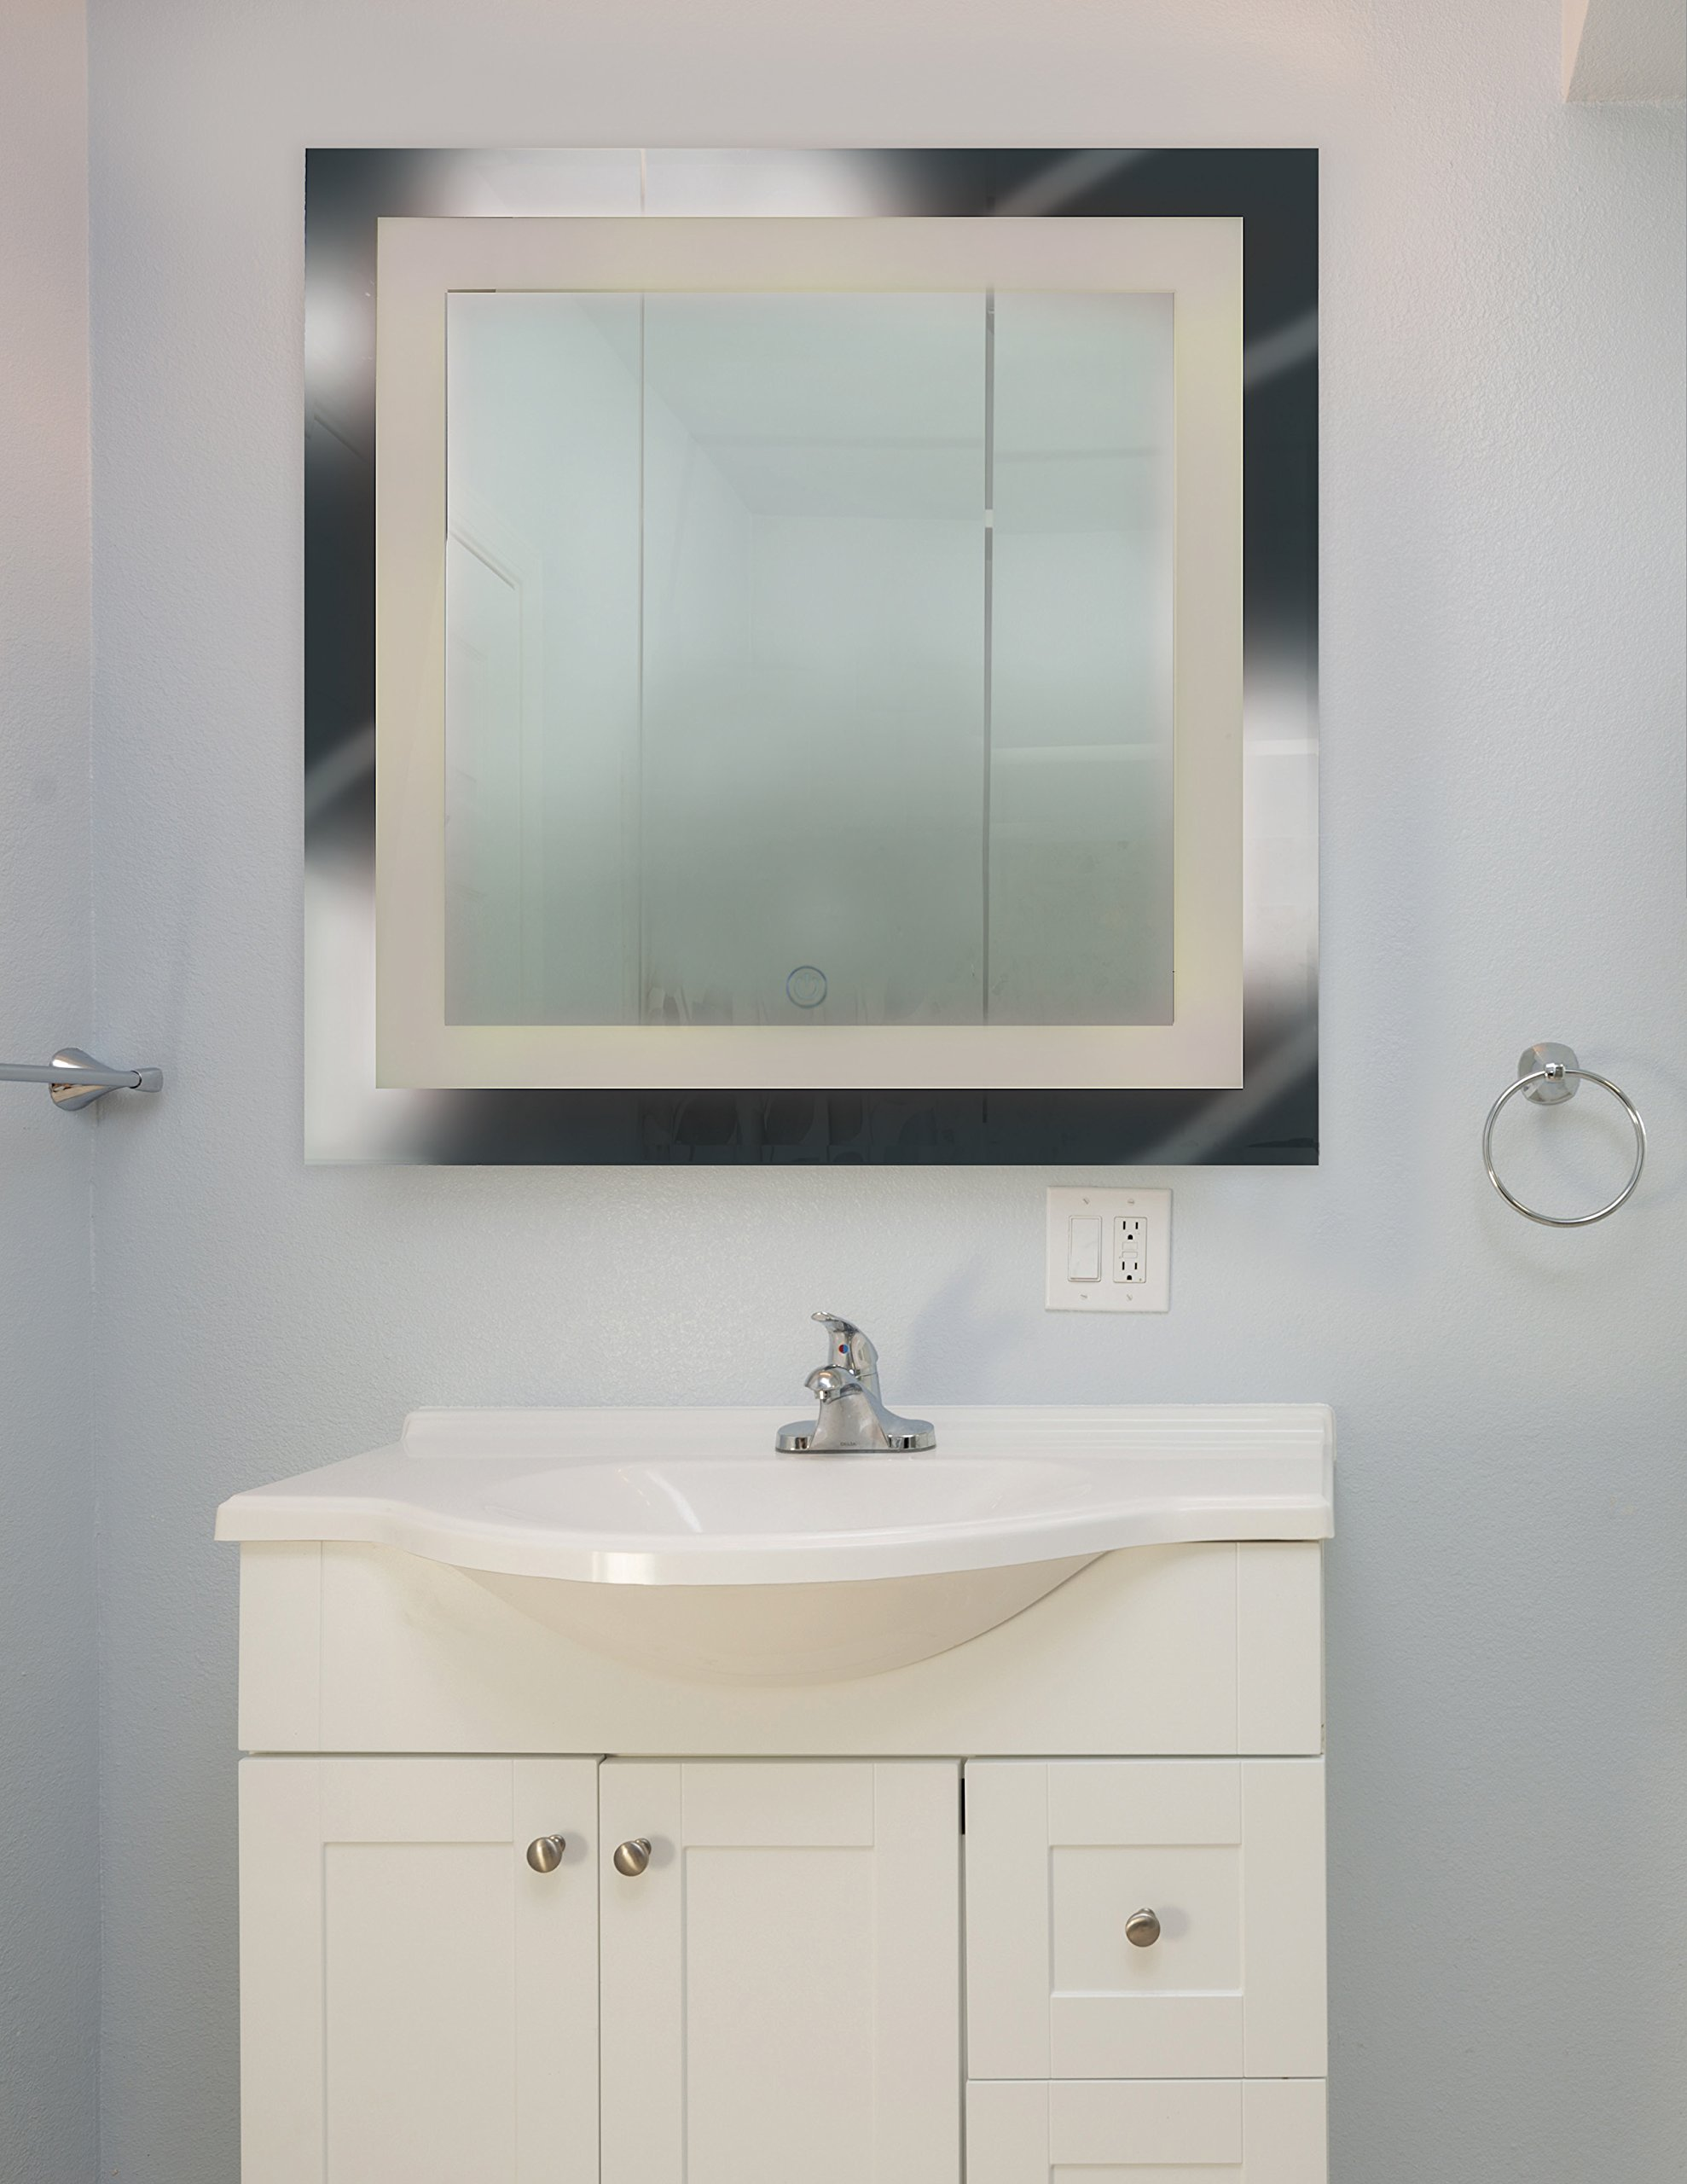 Access Lighting Spa Square Lighted LED Mirror -  Finish with Mirror Glass Shade